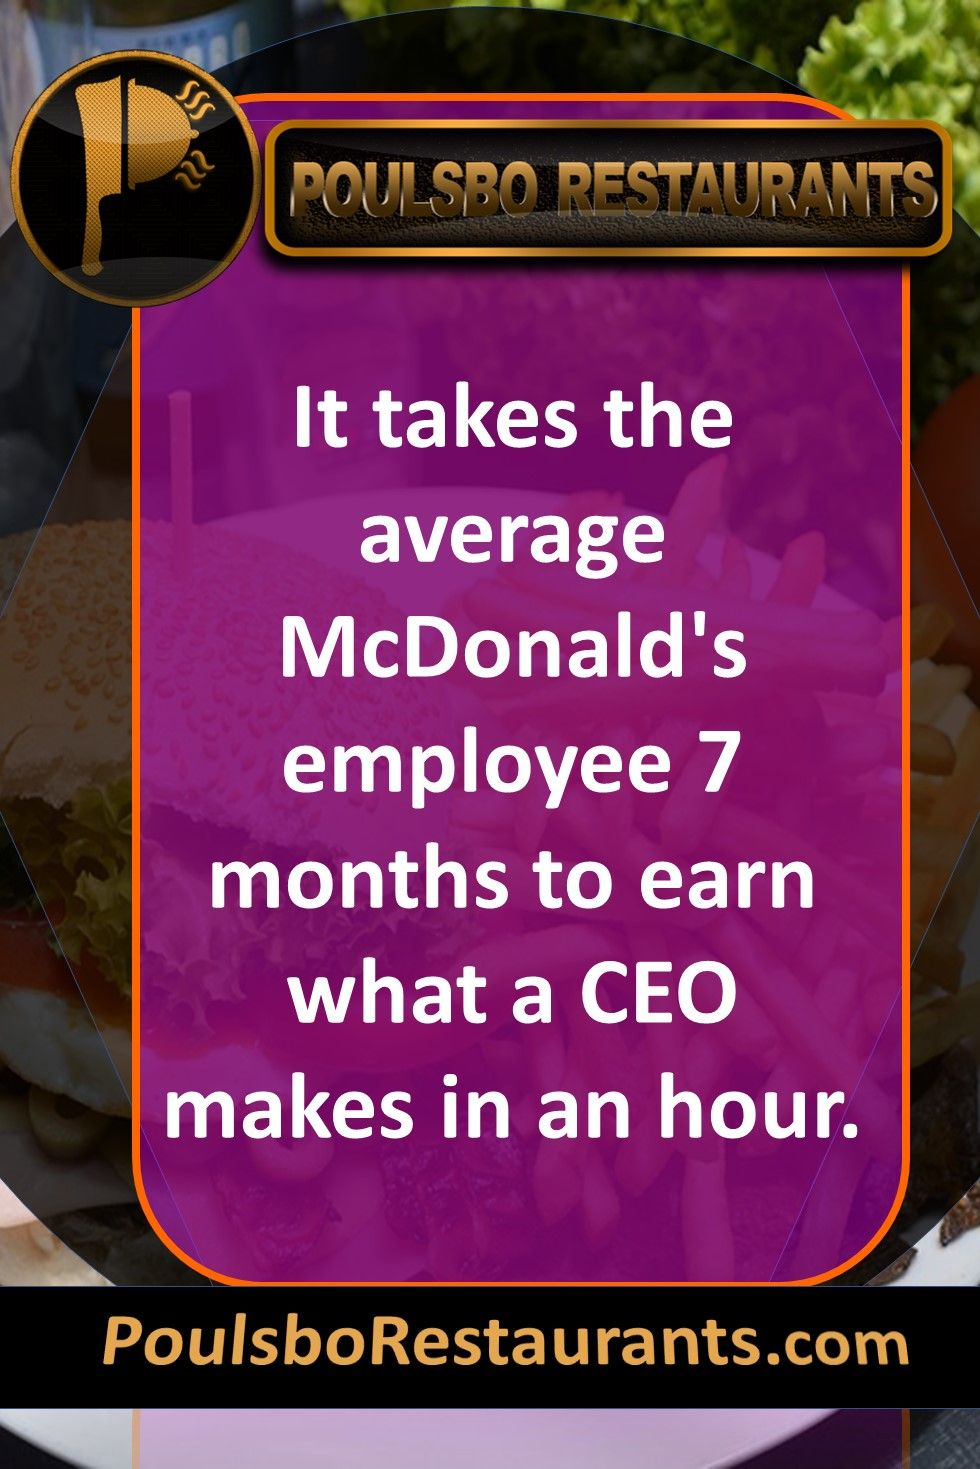 It takes the average McDonald's employee 7 months to earn